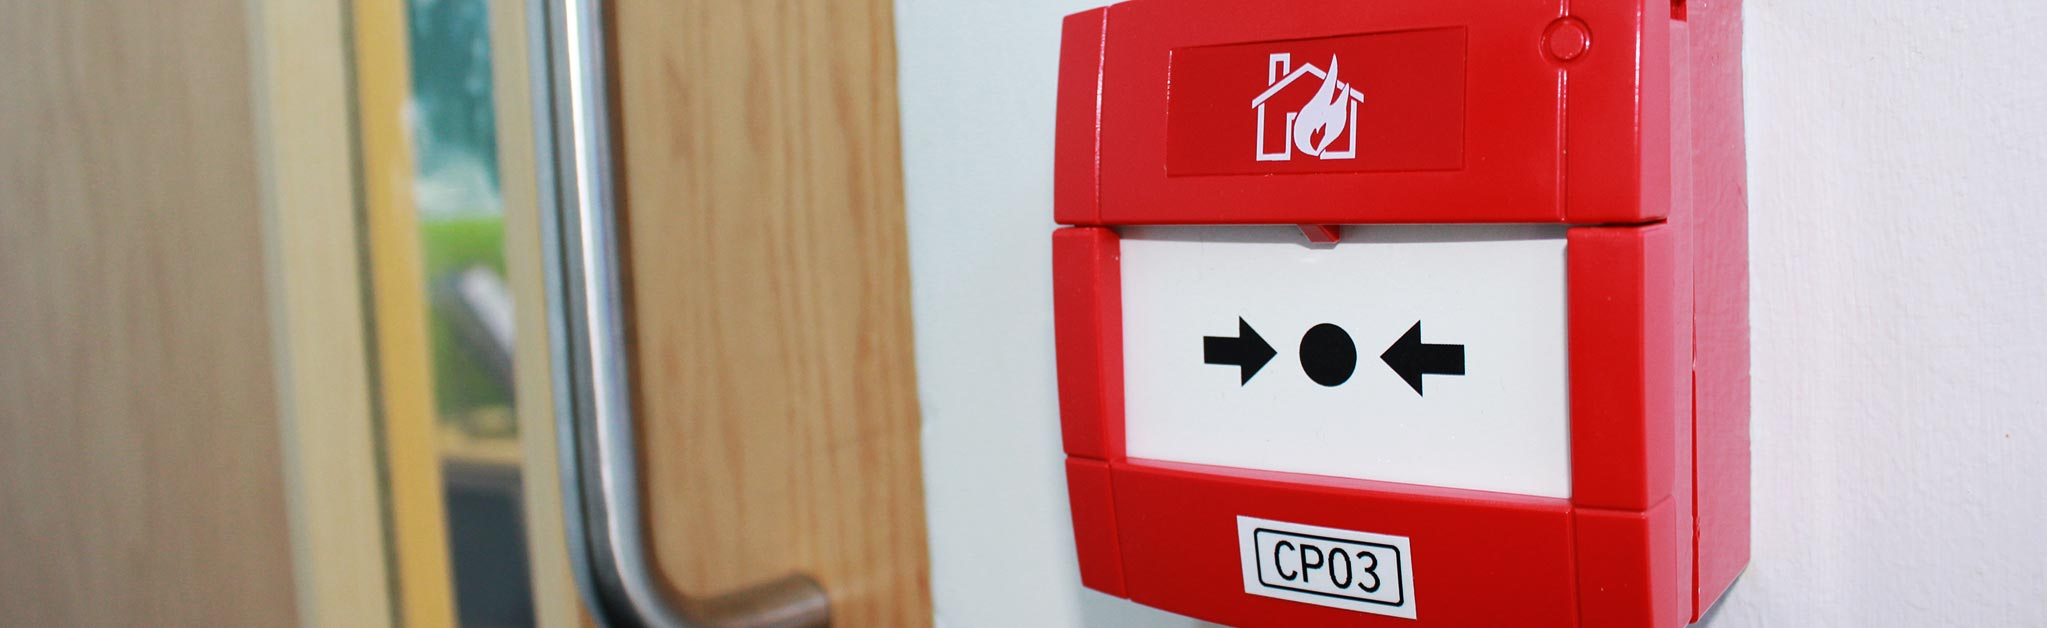 https://leba.co.uk/uploads/images/head-slides/Slide_Fire-Alarms.jpg